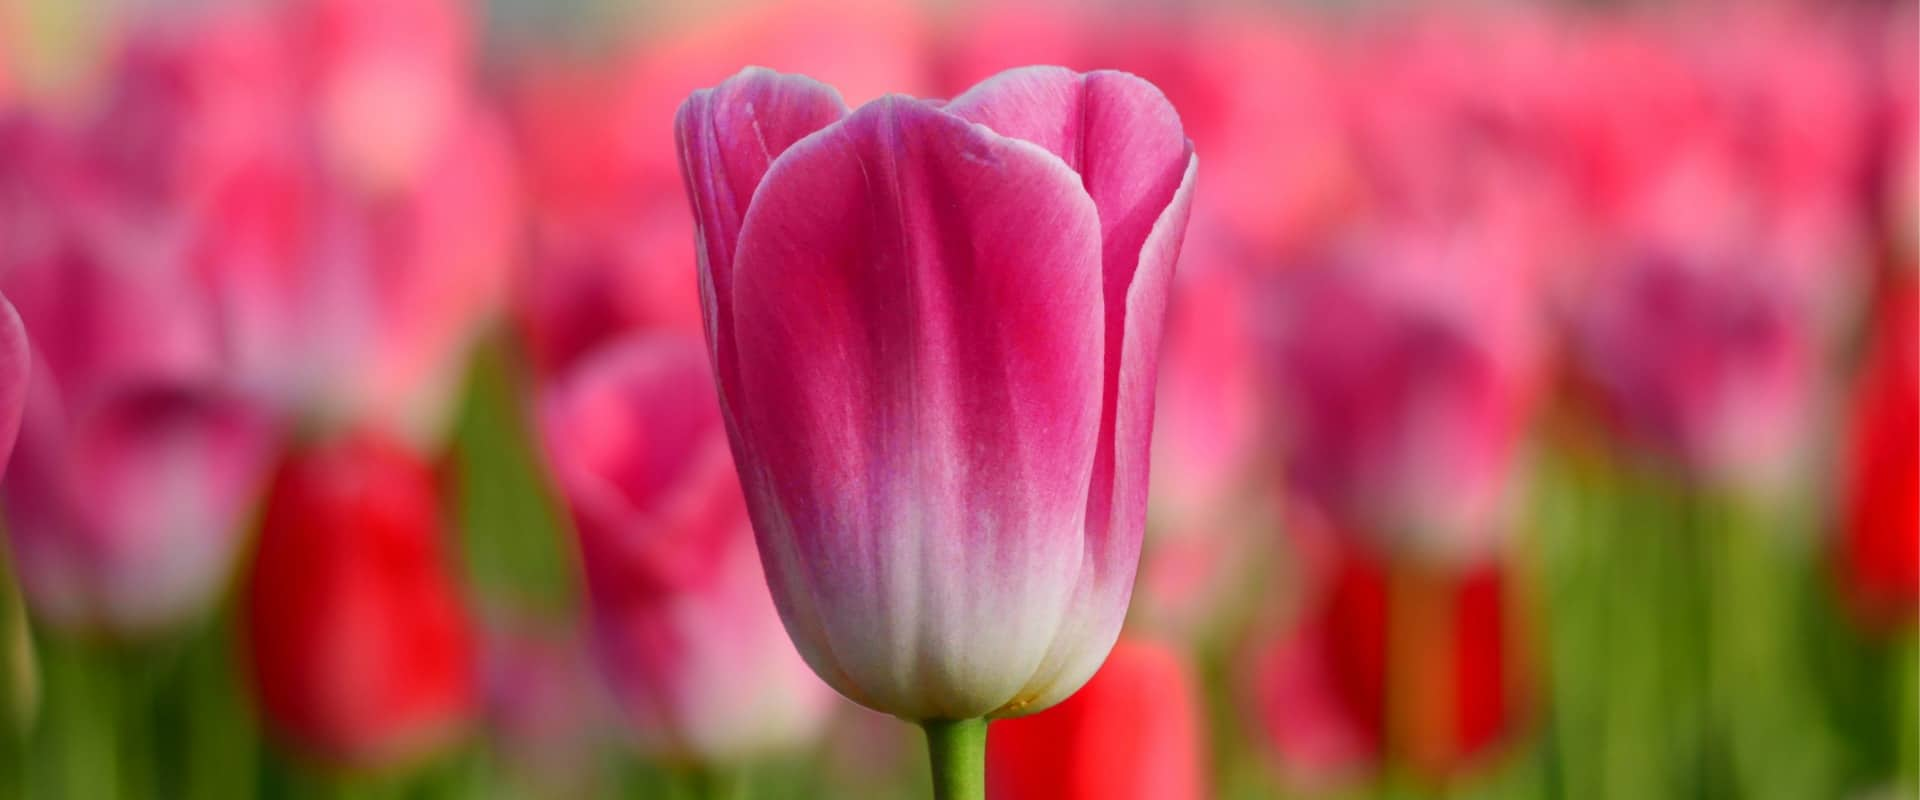 What is a tulip?